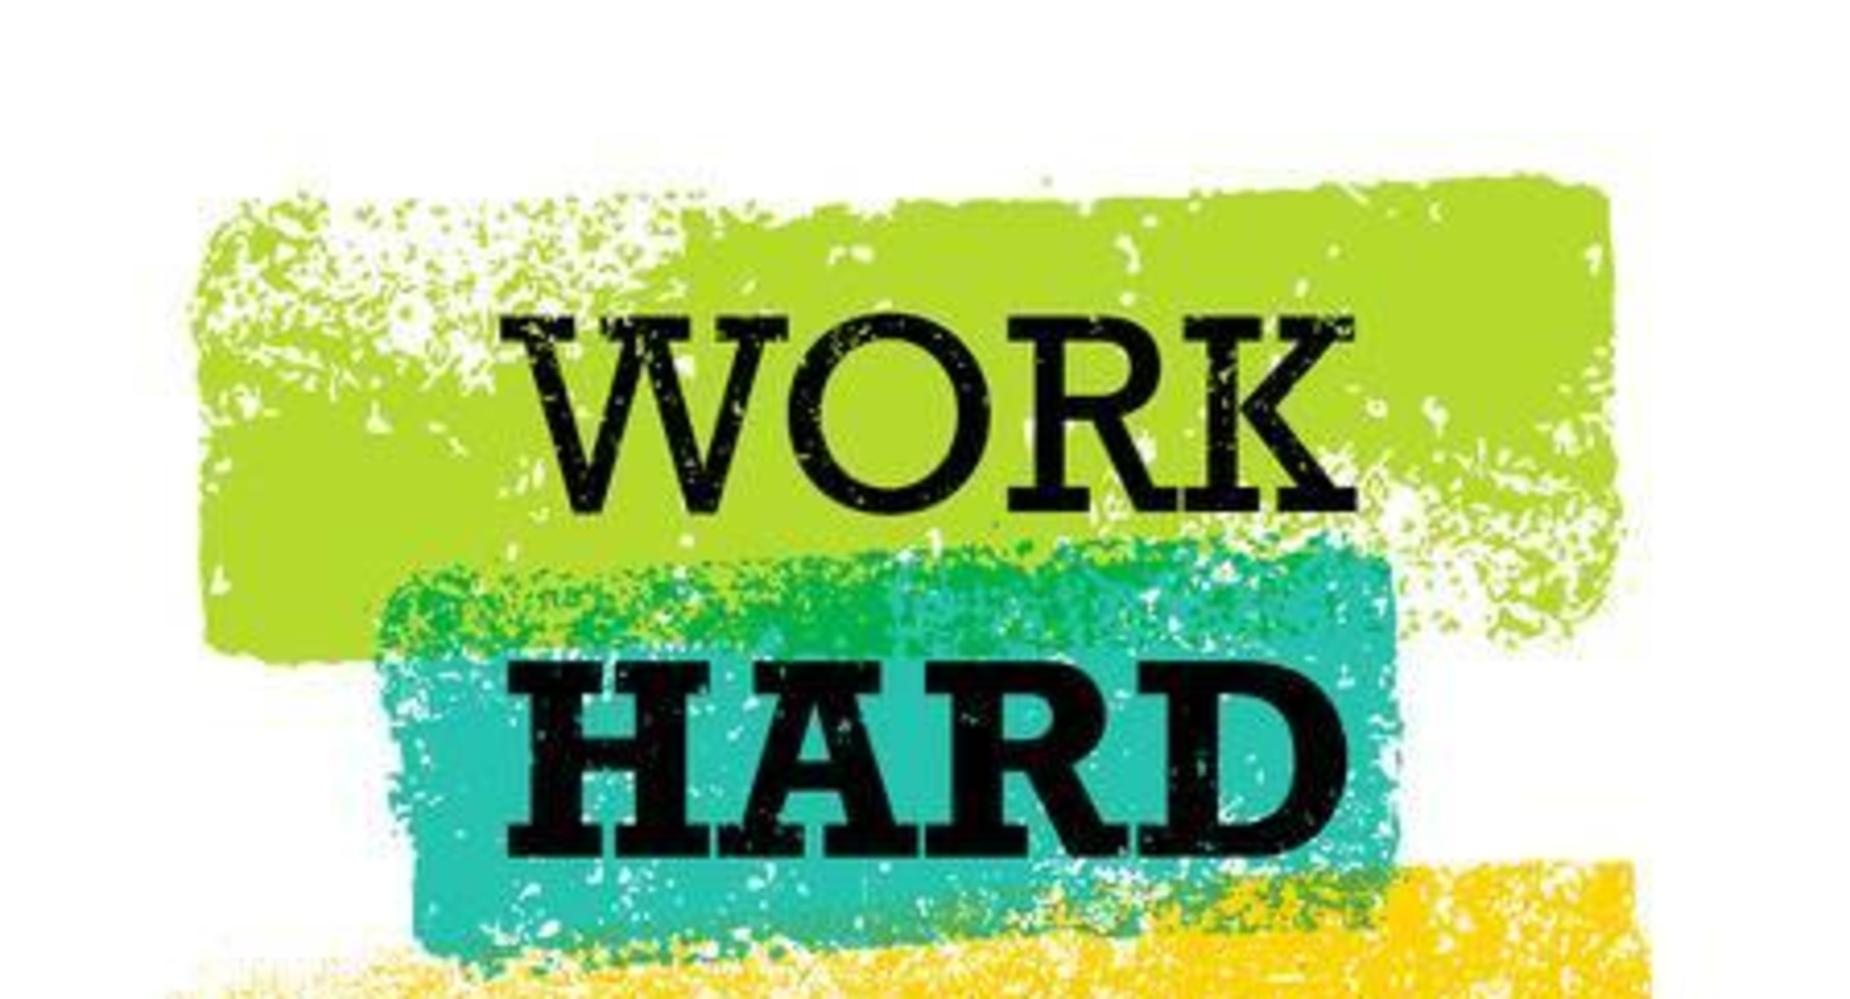 picture work hard